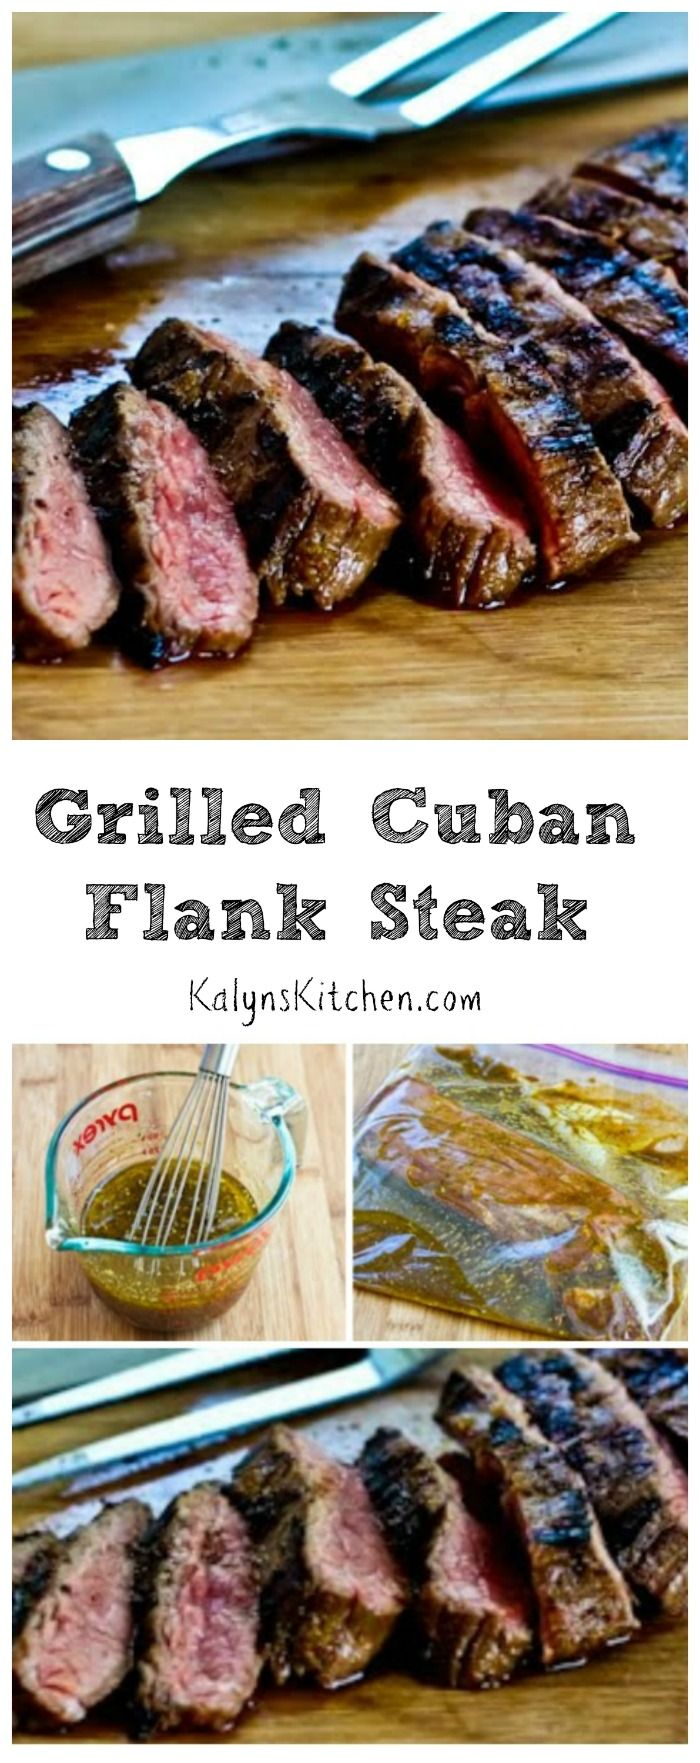 This Grilled Cuban Flank Steak will be a hit with all the beef lovers; perfect for every summer holiday party when you want something special to serve on the grill. This recipe is #LowCarb, #GlutenFree, and #Paleo, and it's delicious. [from KalynsKitchen.com]